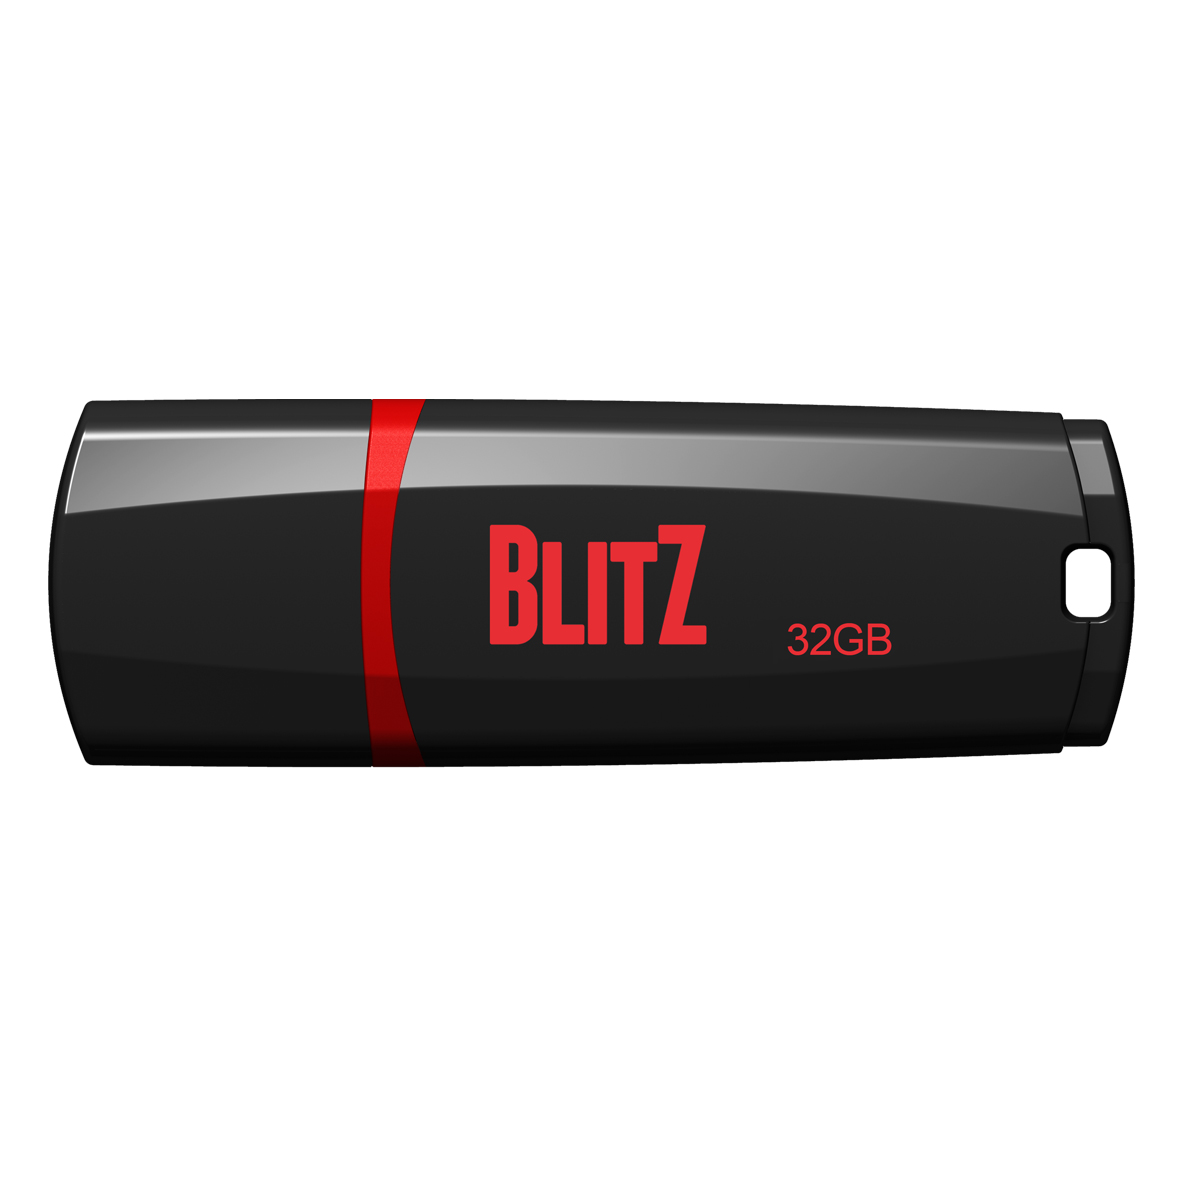 32GB Patriot Blitz USB 3.0, černý LED